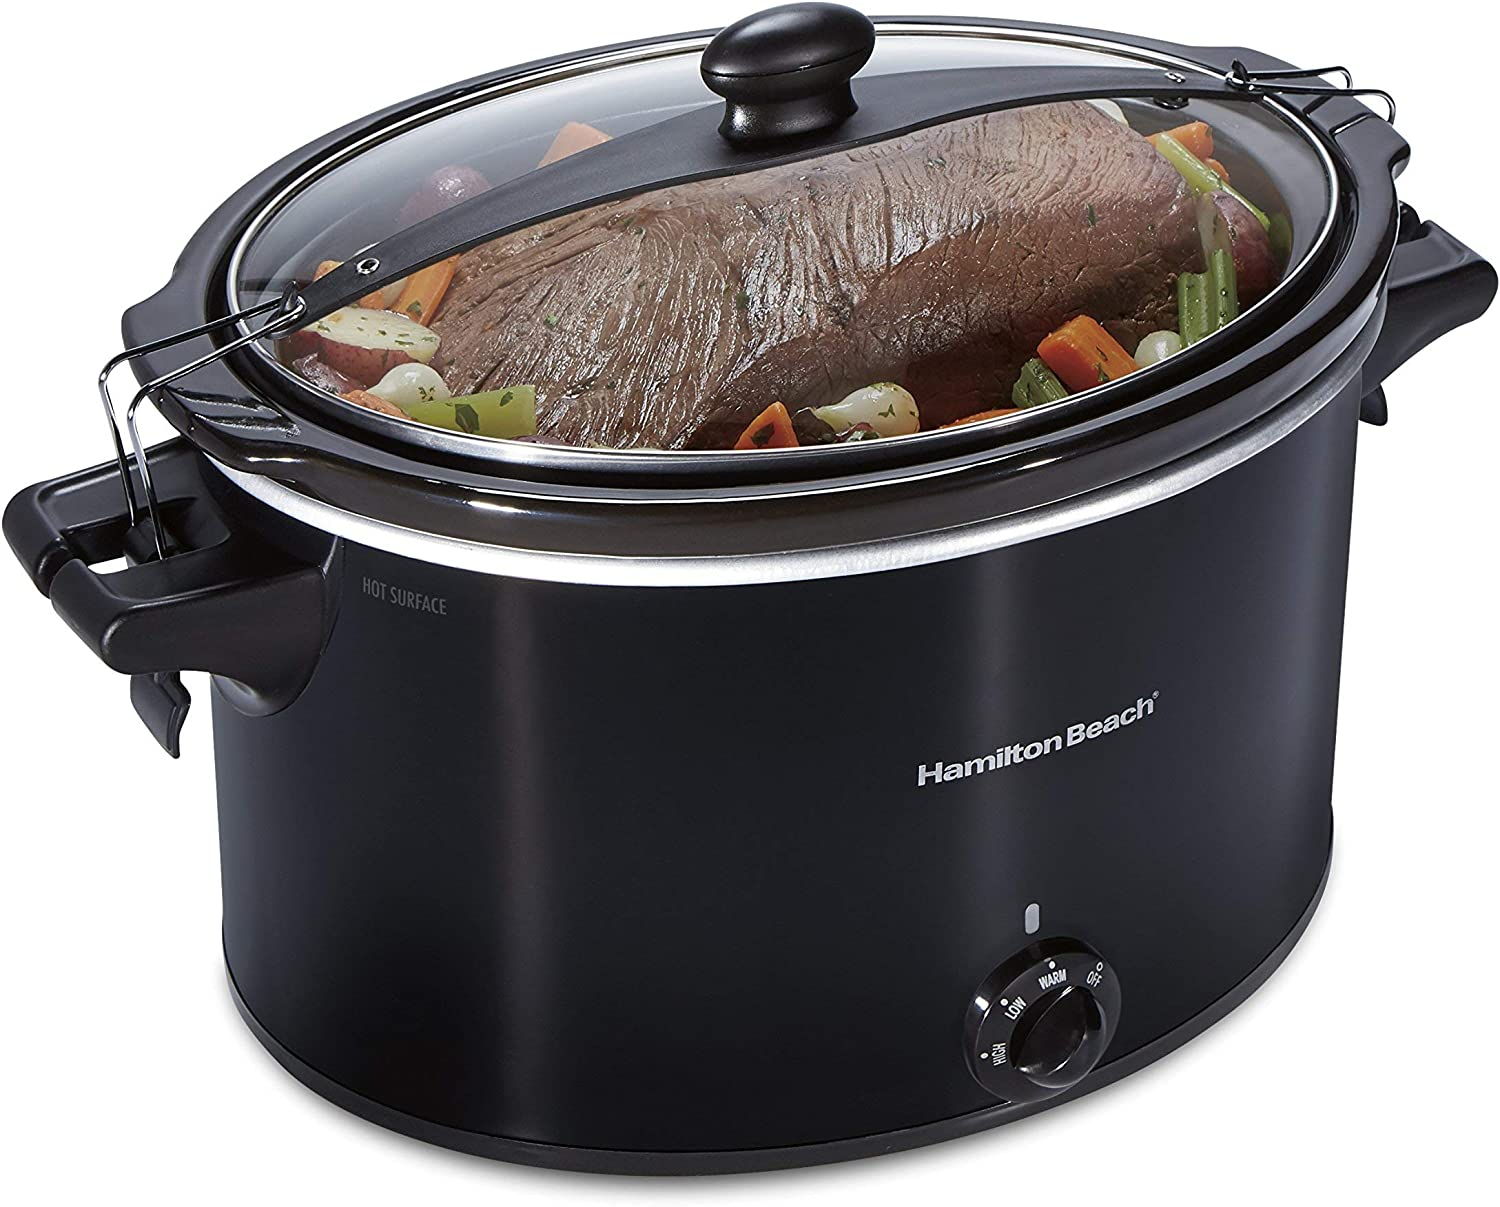 Hamilton Beach 33195 Extra-Large Stay or Go Slow Cooker, 10 Quart Capacity, Black (Renewed)